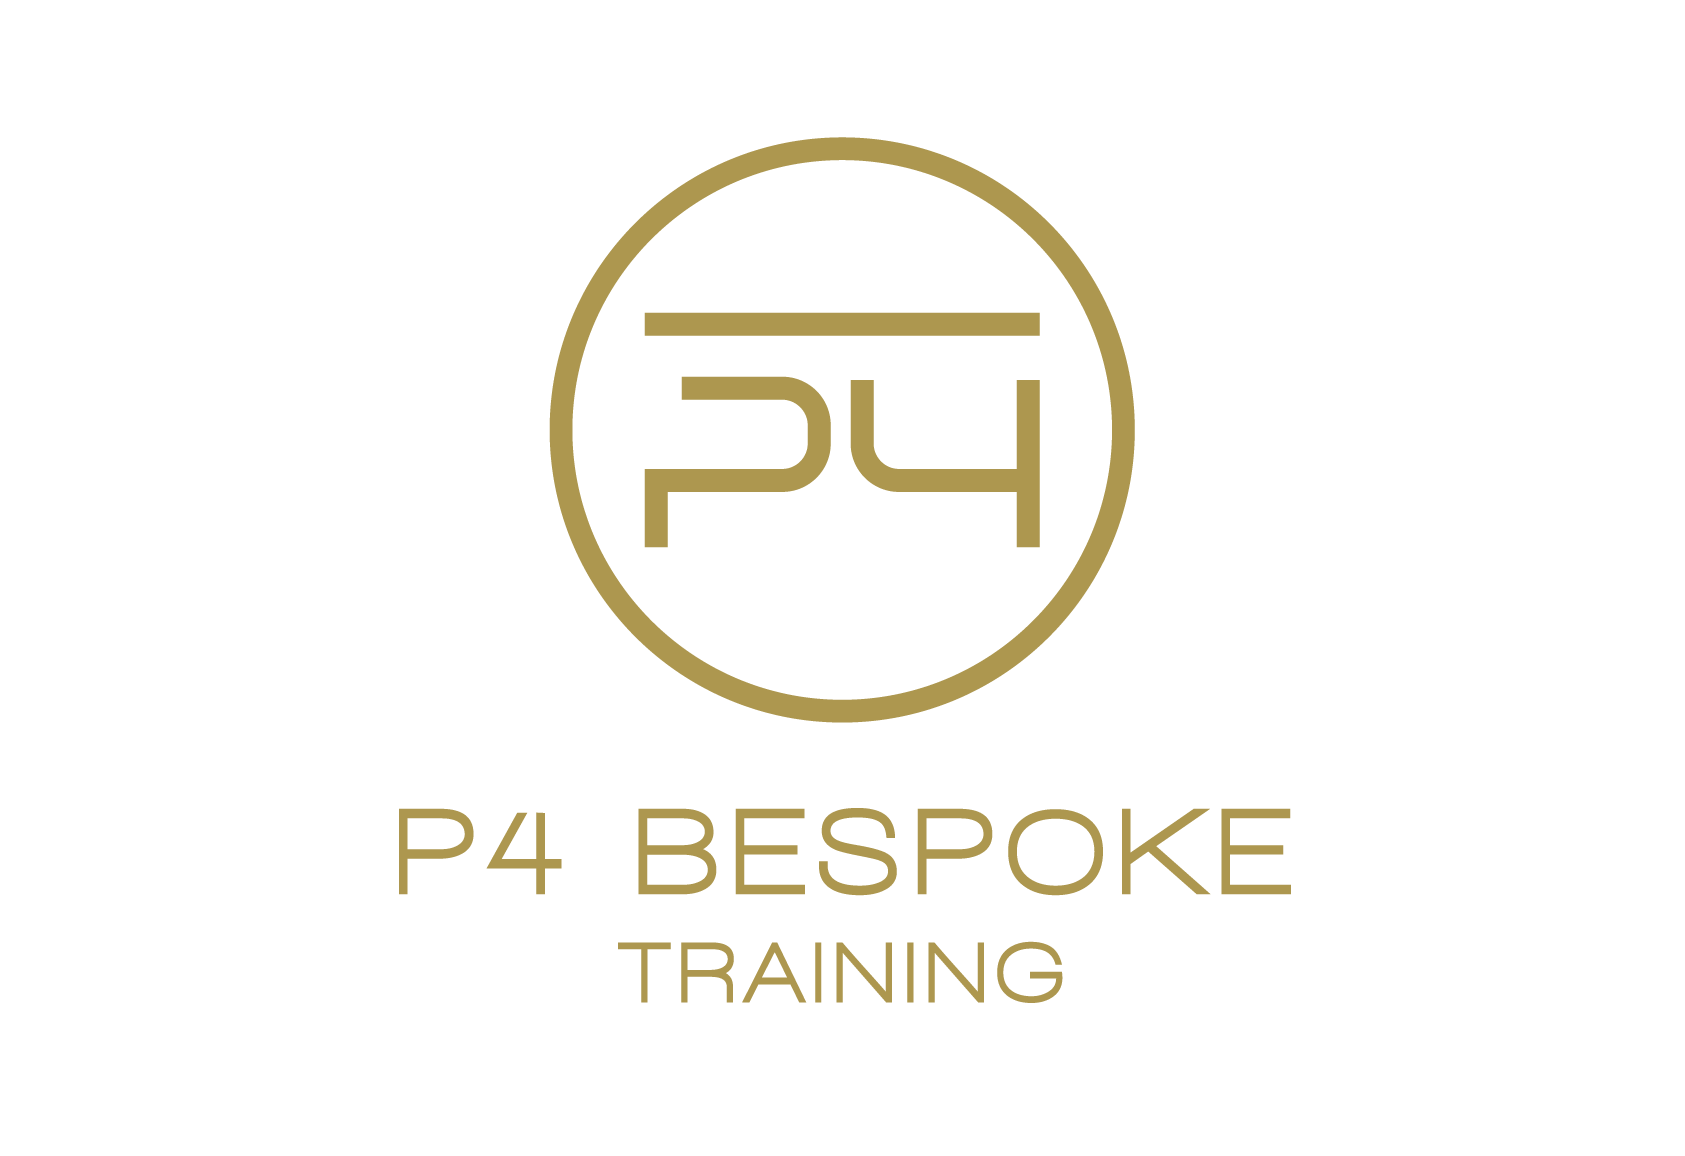 Read P4 Bespoke Training Reviews